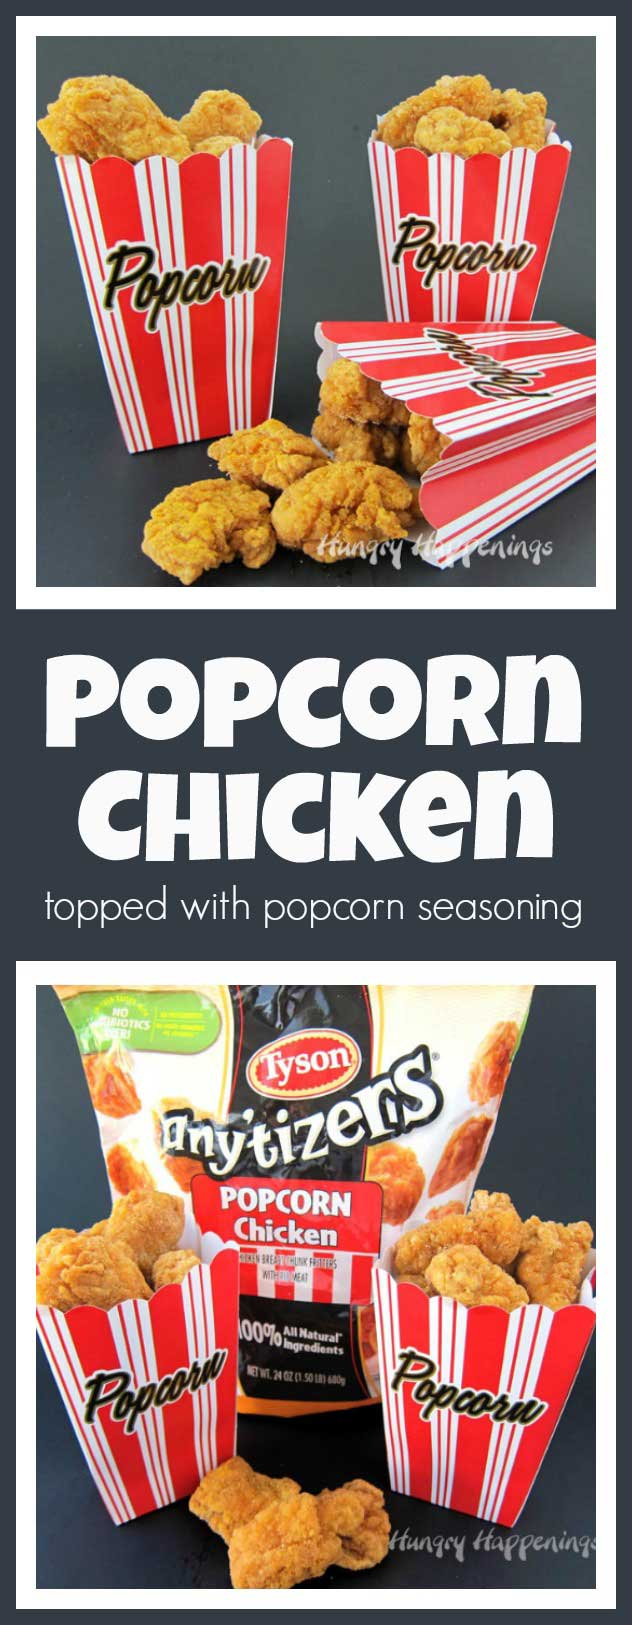 Sprinkle cheddar cheese, ranch, or garlic Parmesan popcorn seasoning over Tyson Popcorn Chicken then serve it in popcorn boxes for a fun movie night snack or dinner.